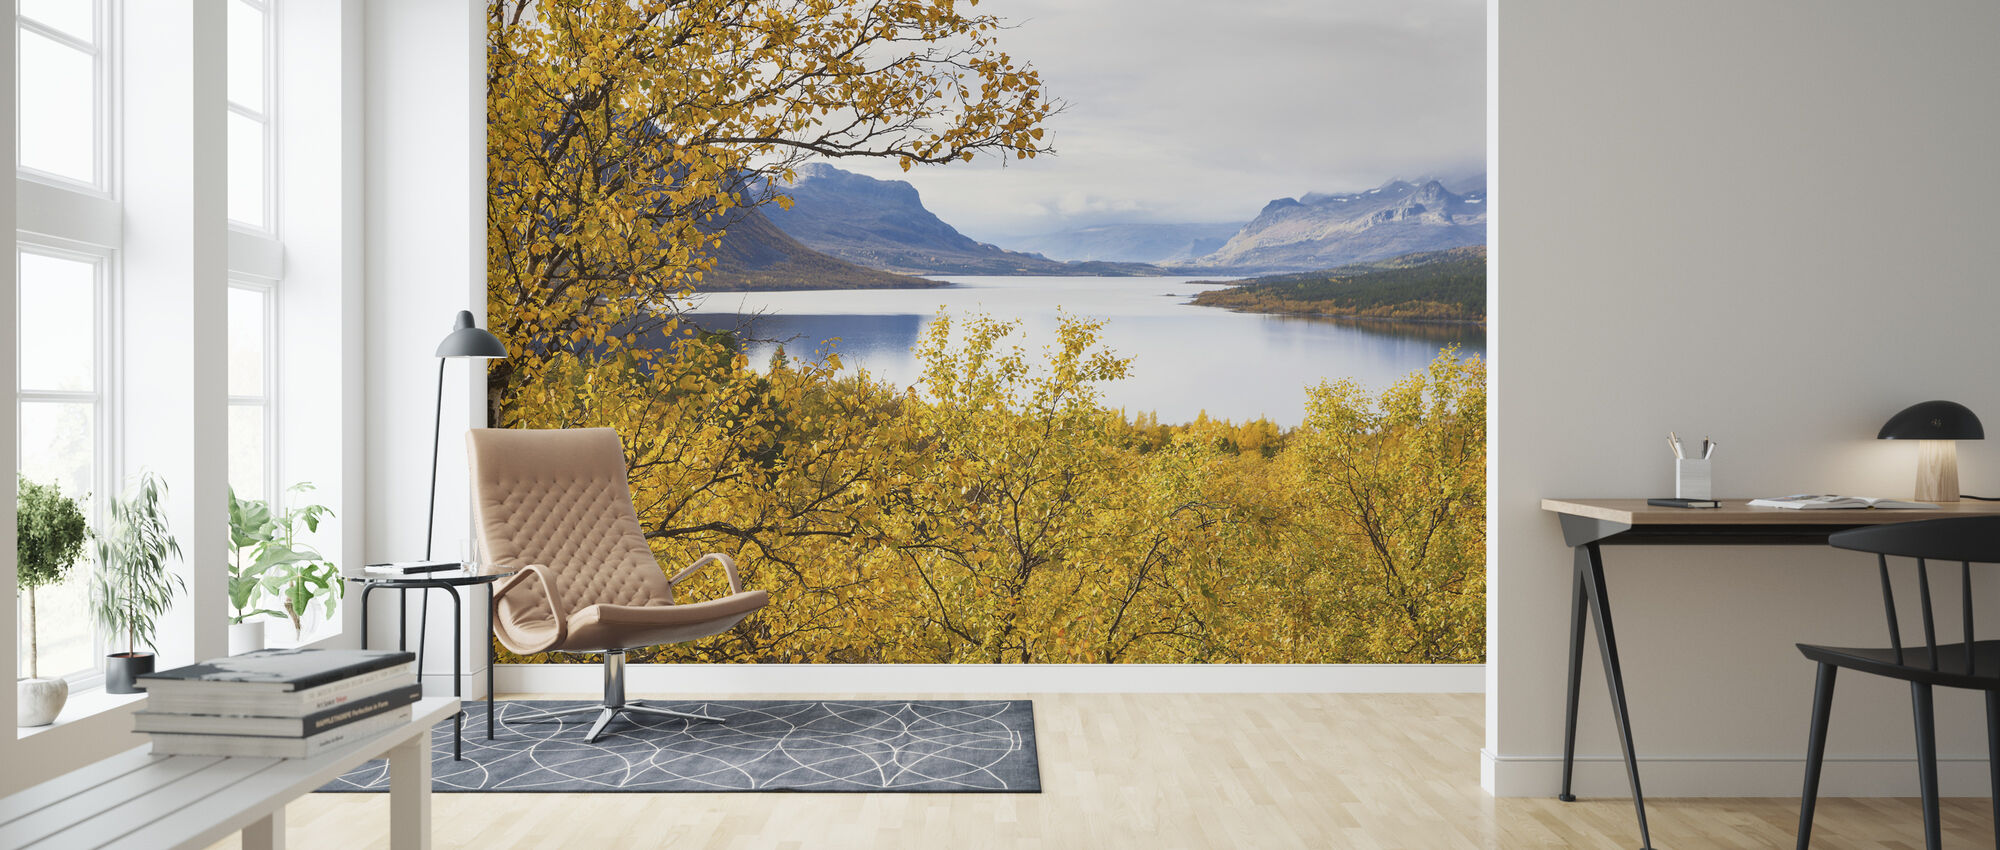 Saltoluokta Landscape - Wallpaper - Living Room